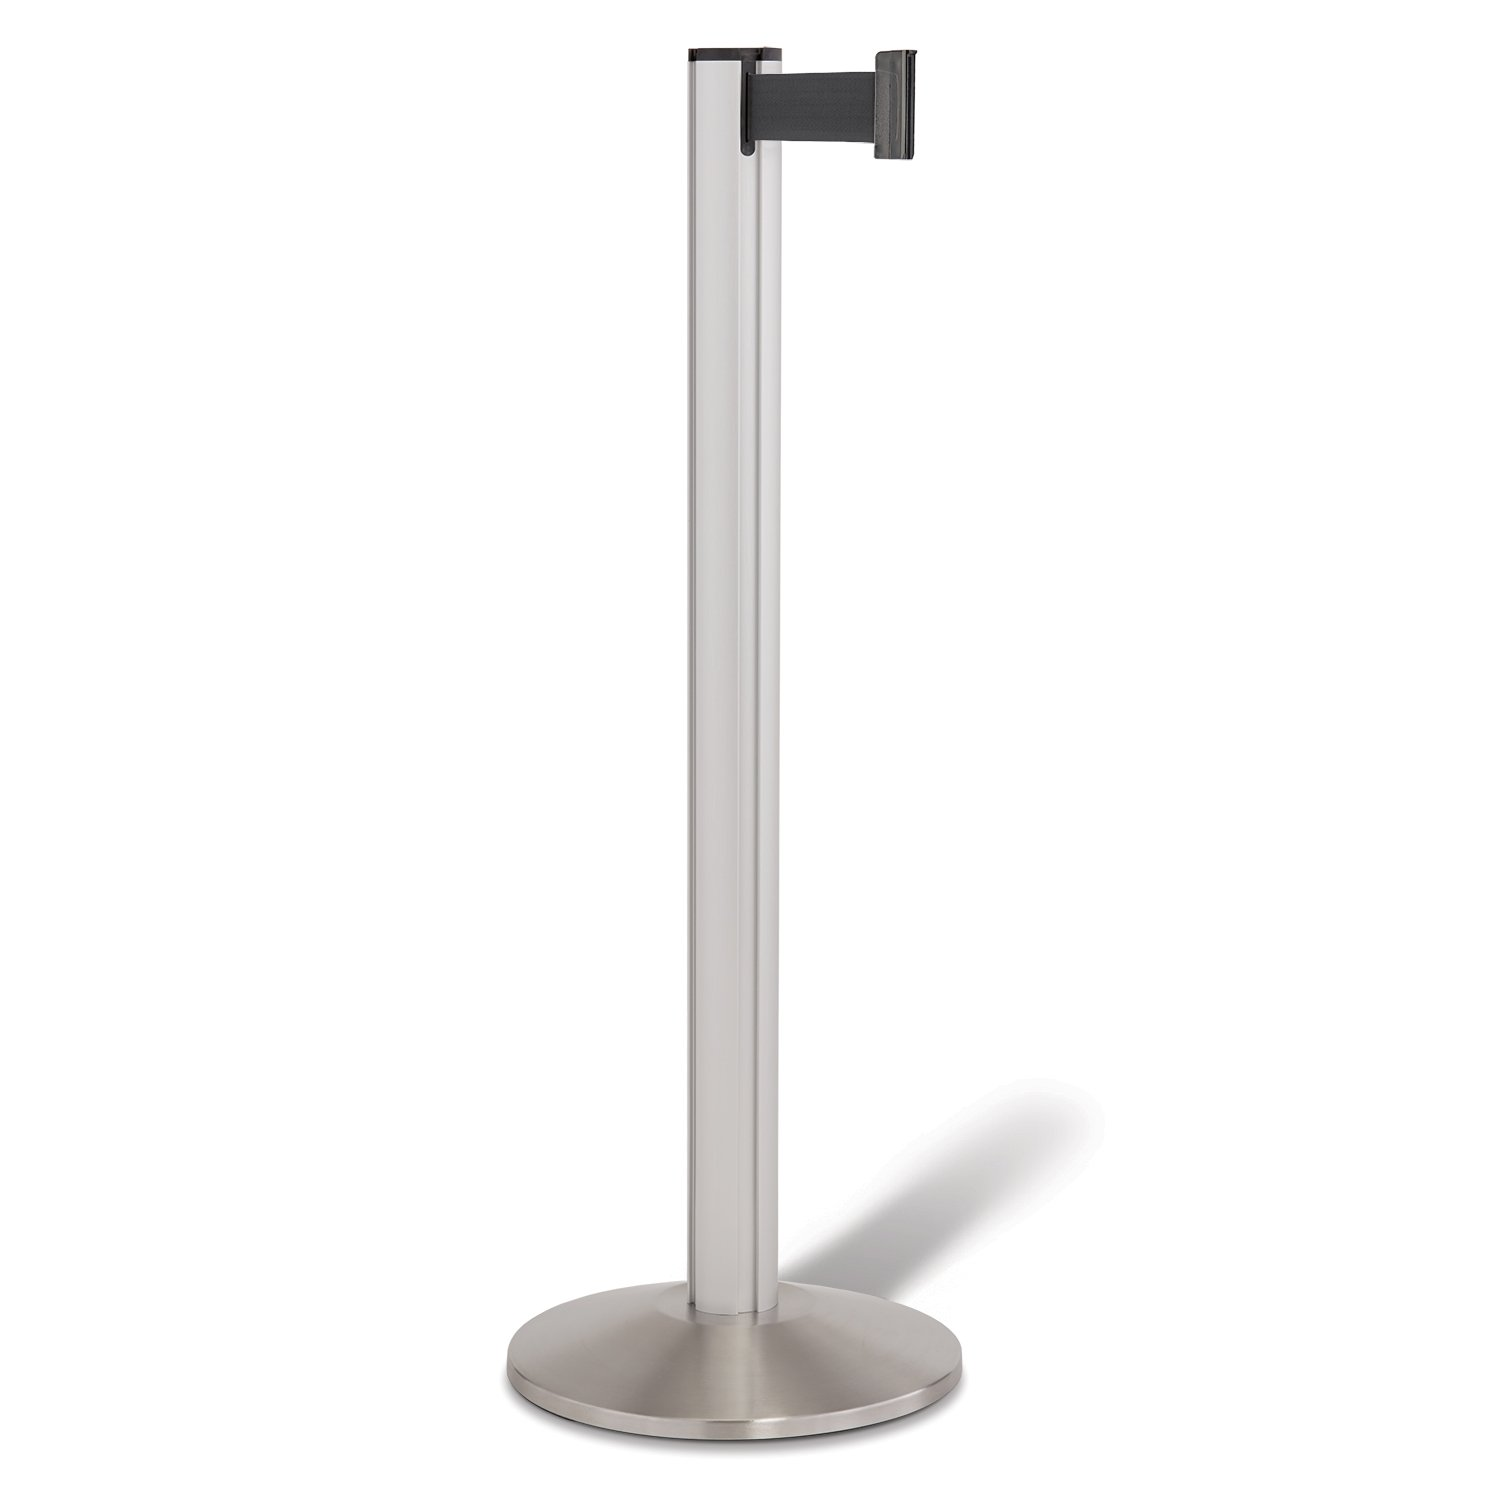 Beltrac 3000 Retractable Belt Stanchion, Satin Aluminum with 7 foot Black Belt by Lavi Industries